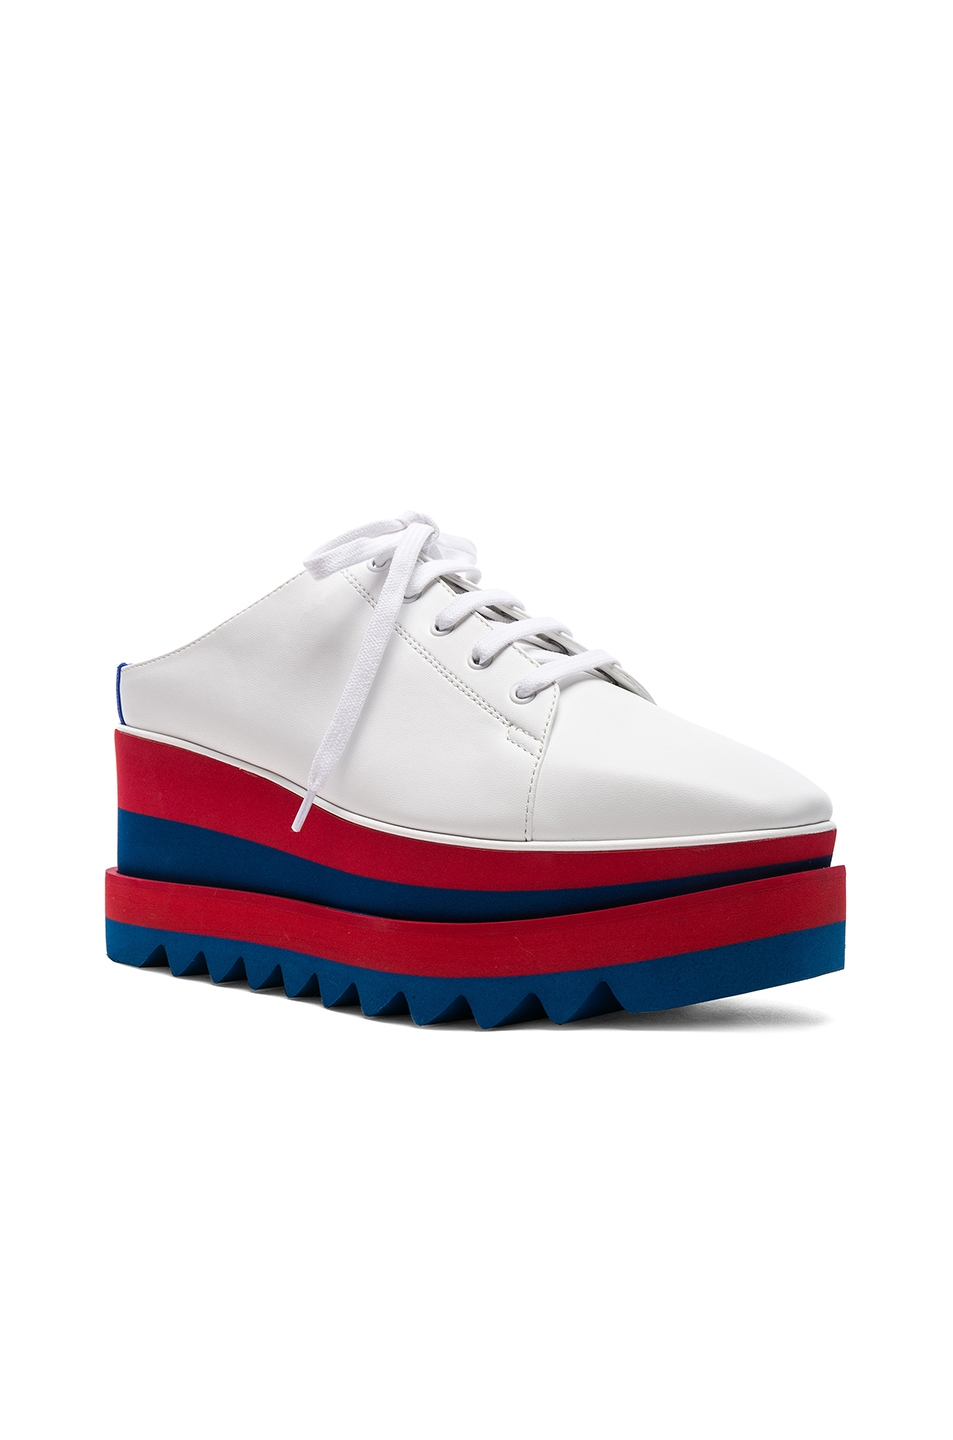 Image 2 of Stella McCartney Platform Wedge Oxford Mules in White, Red & Blue